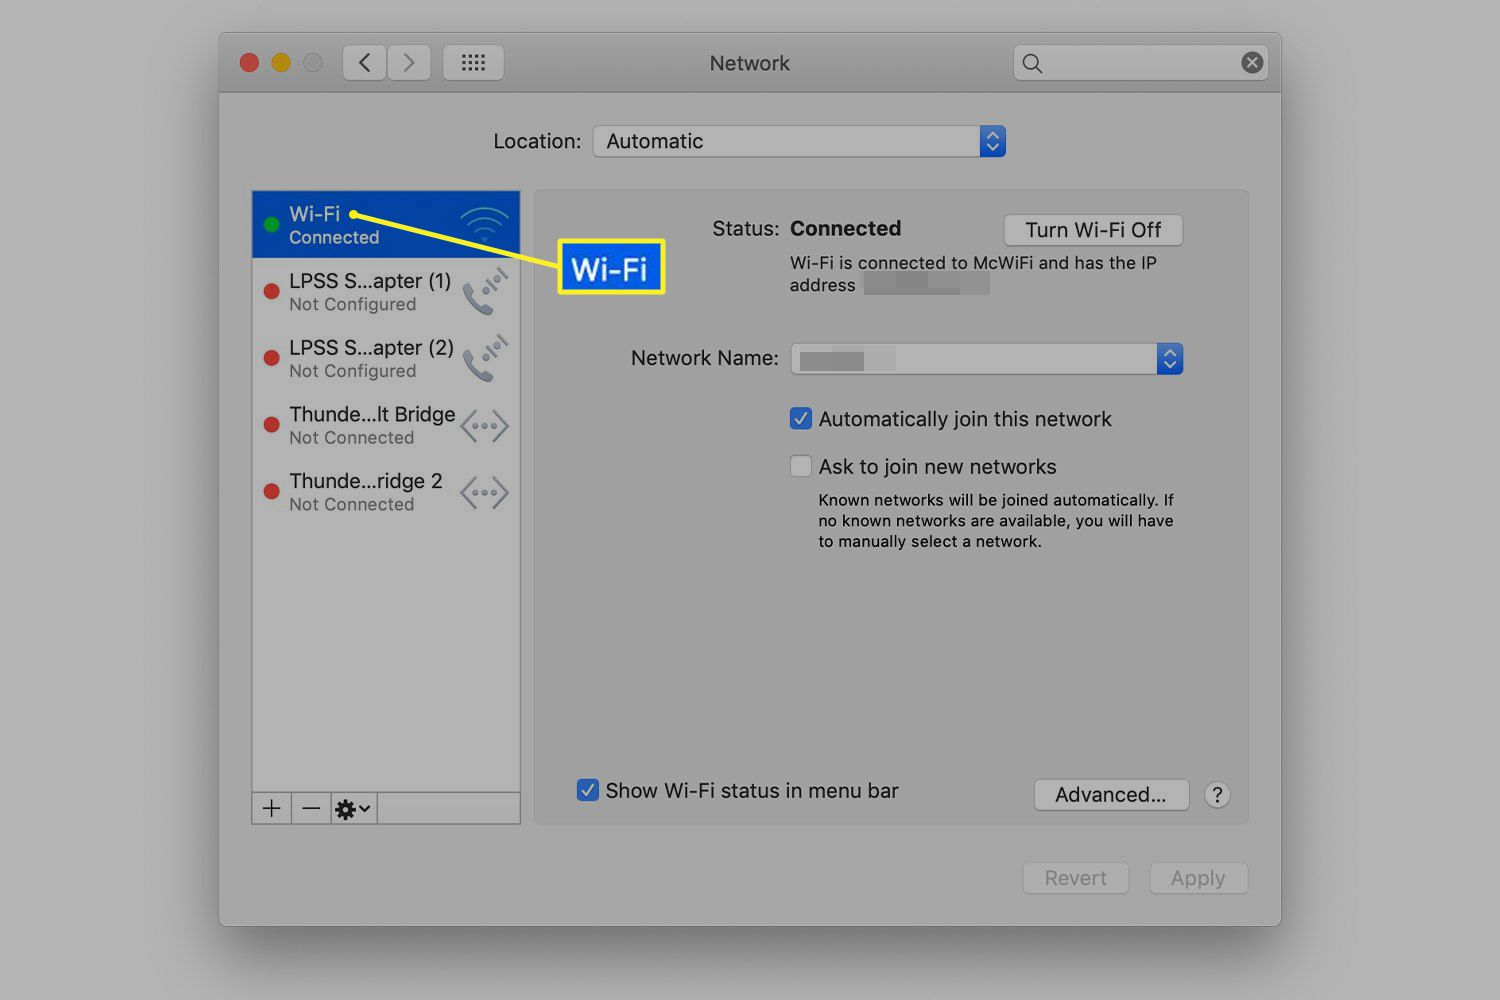 Network system preferences screen